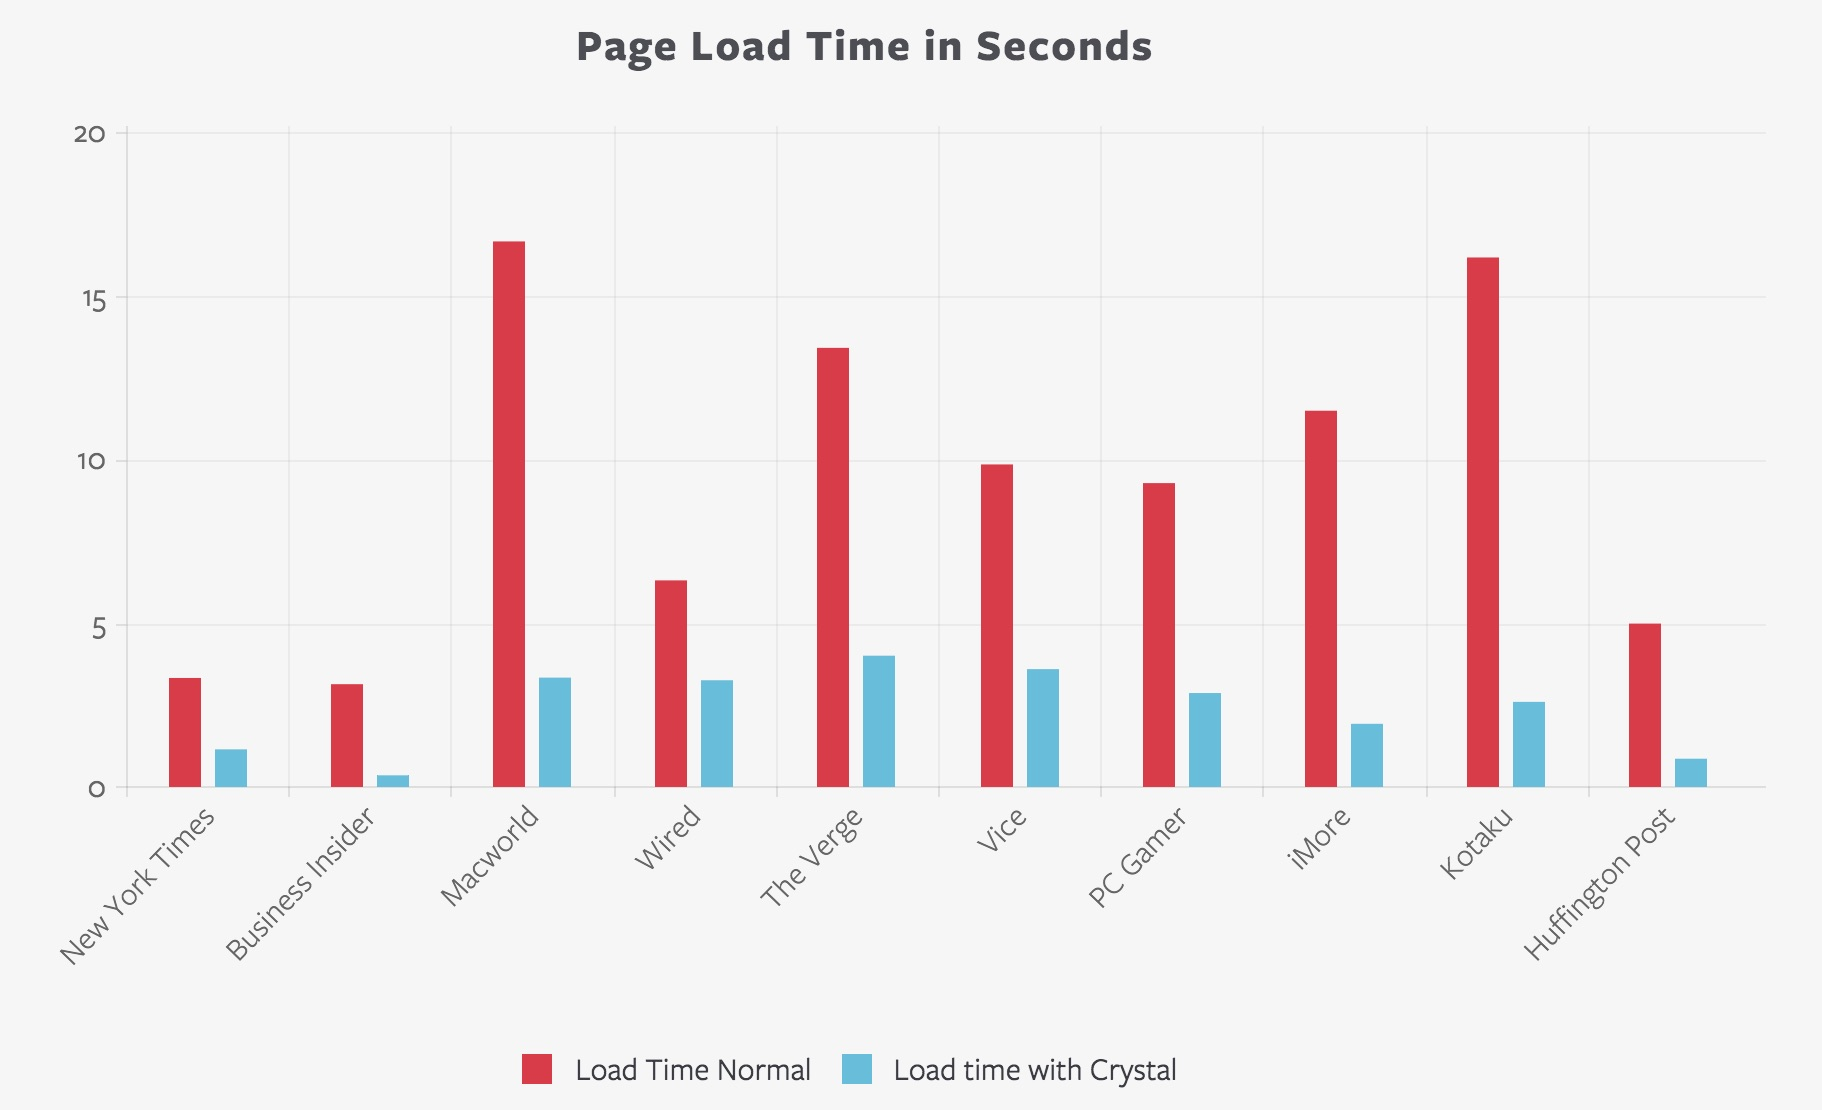 Chart comparing page load time for Safari on iOS9 using Crystal ad-blocking software